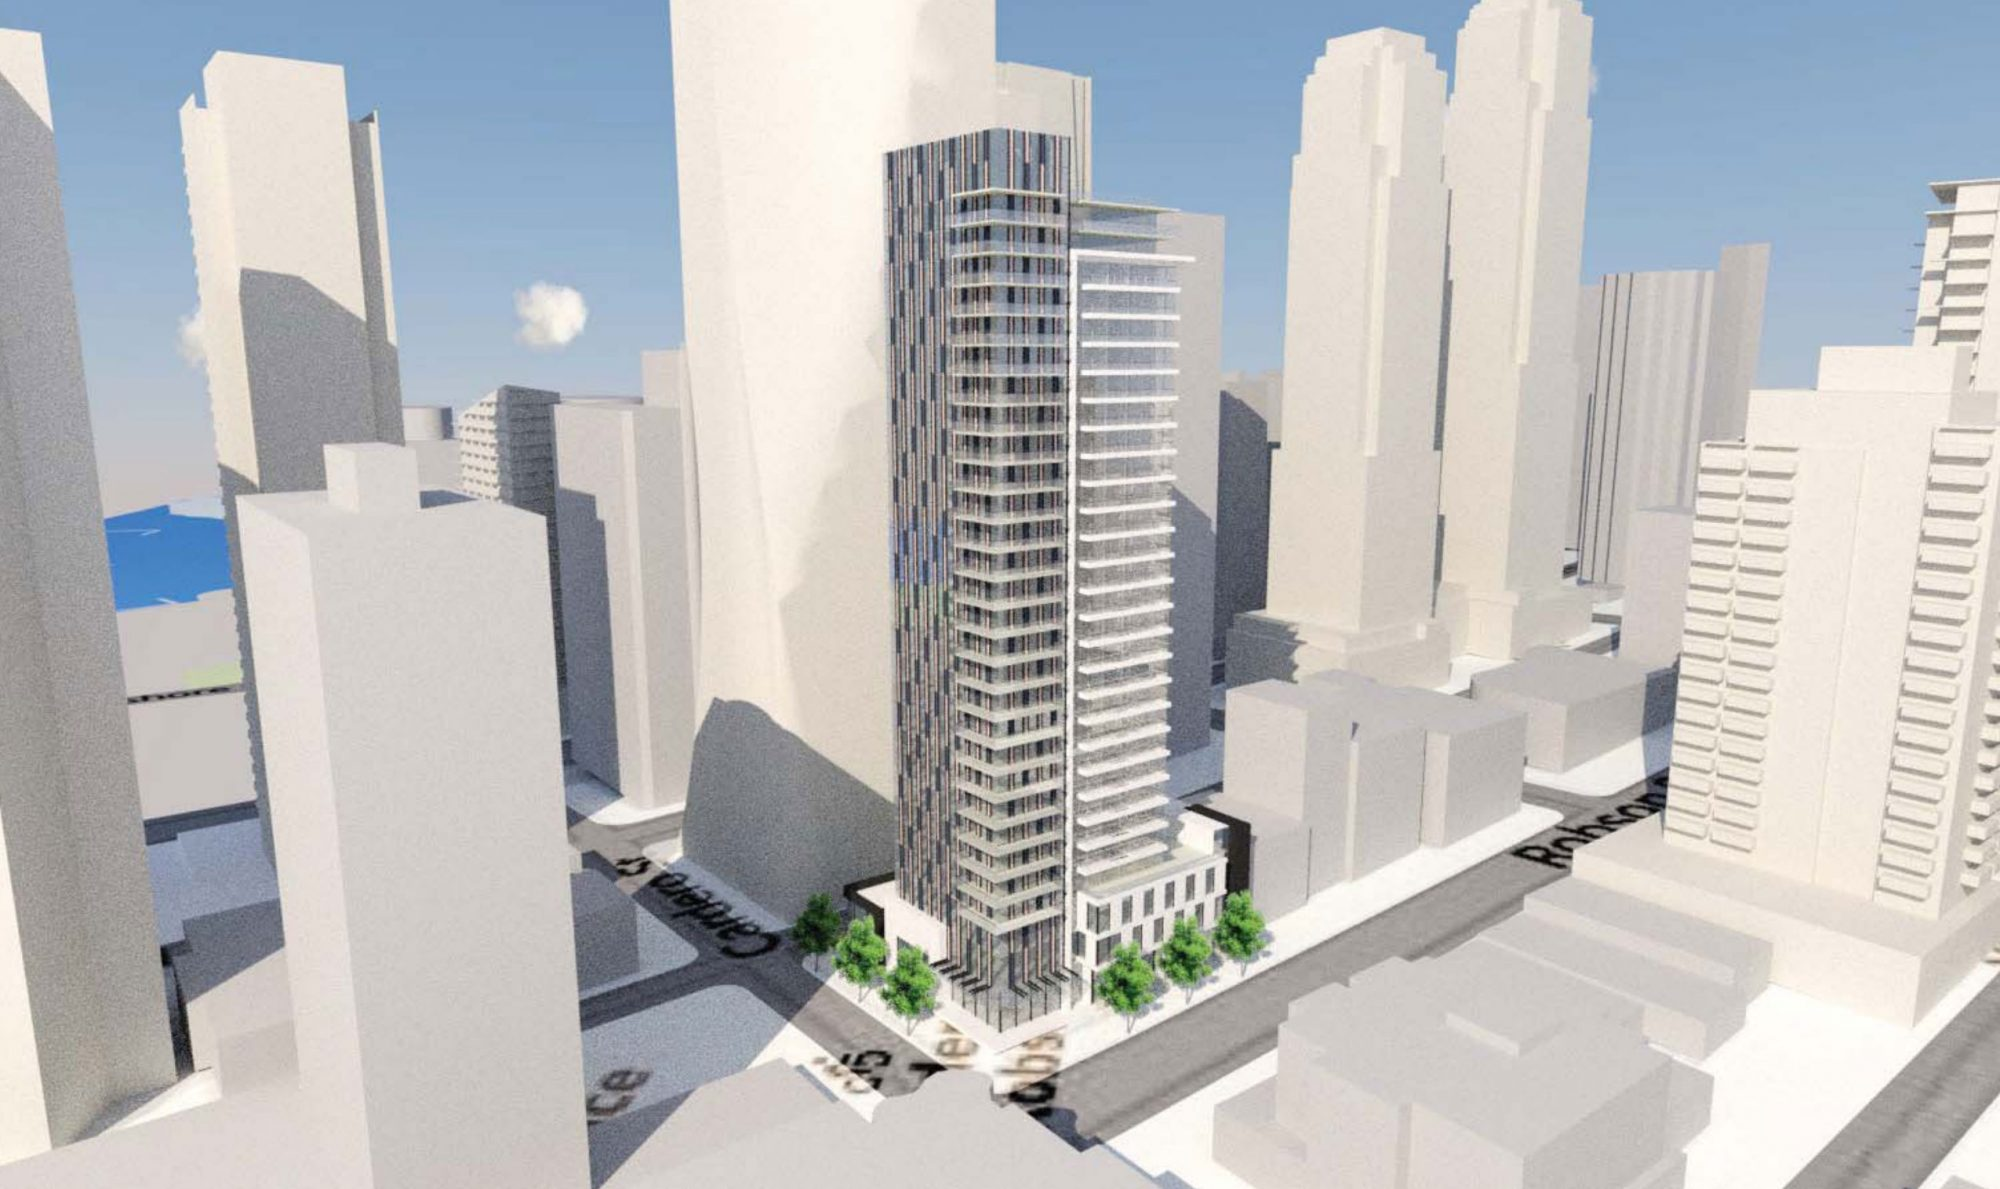 300 ft. tower at Robson and Cardero to replace Korean restaurant, kitchenware shop